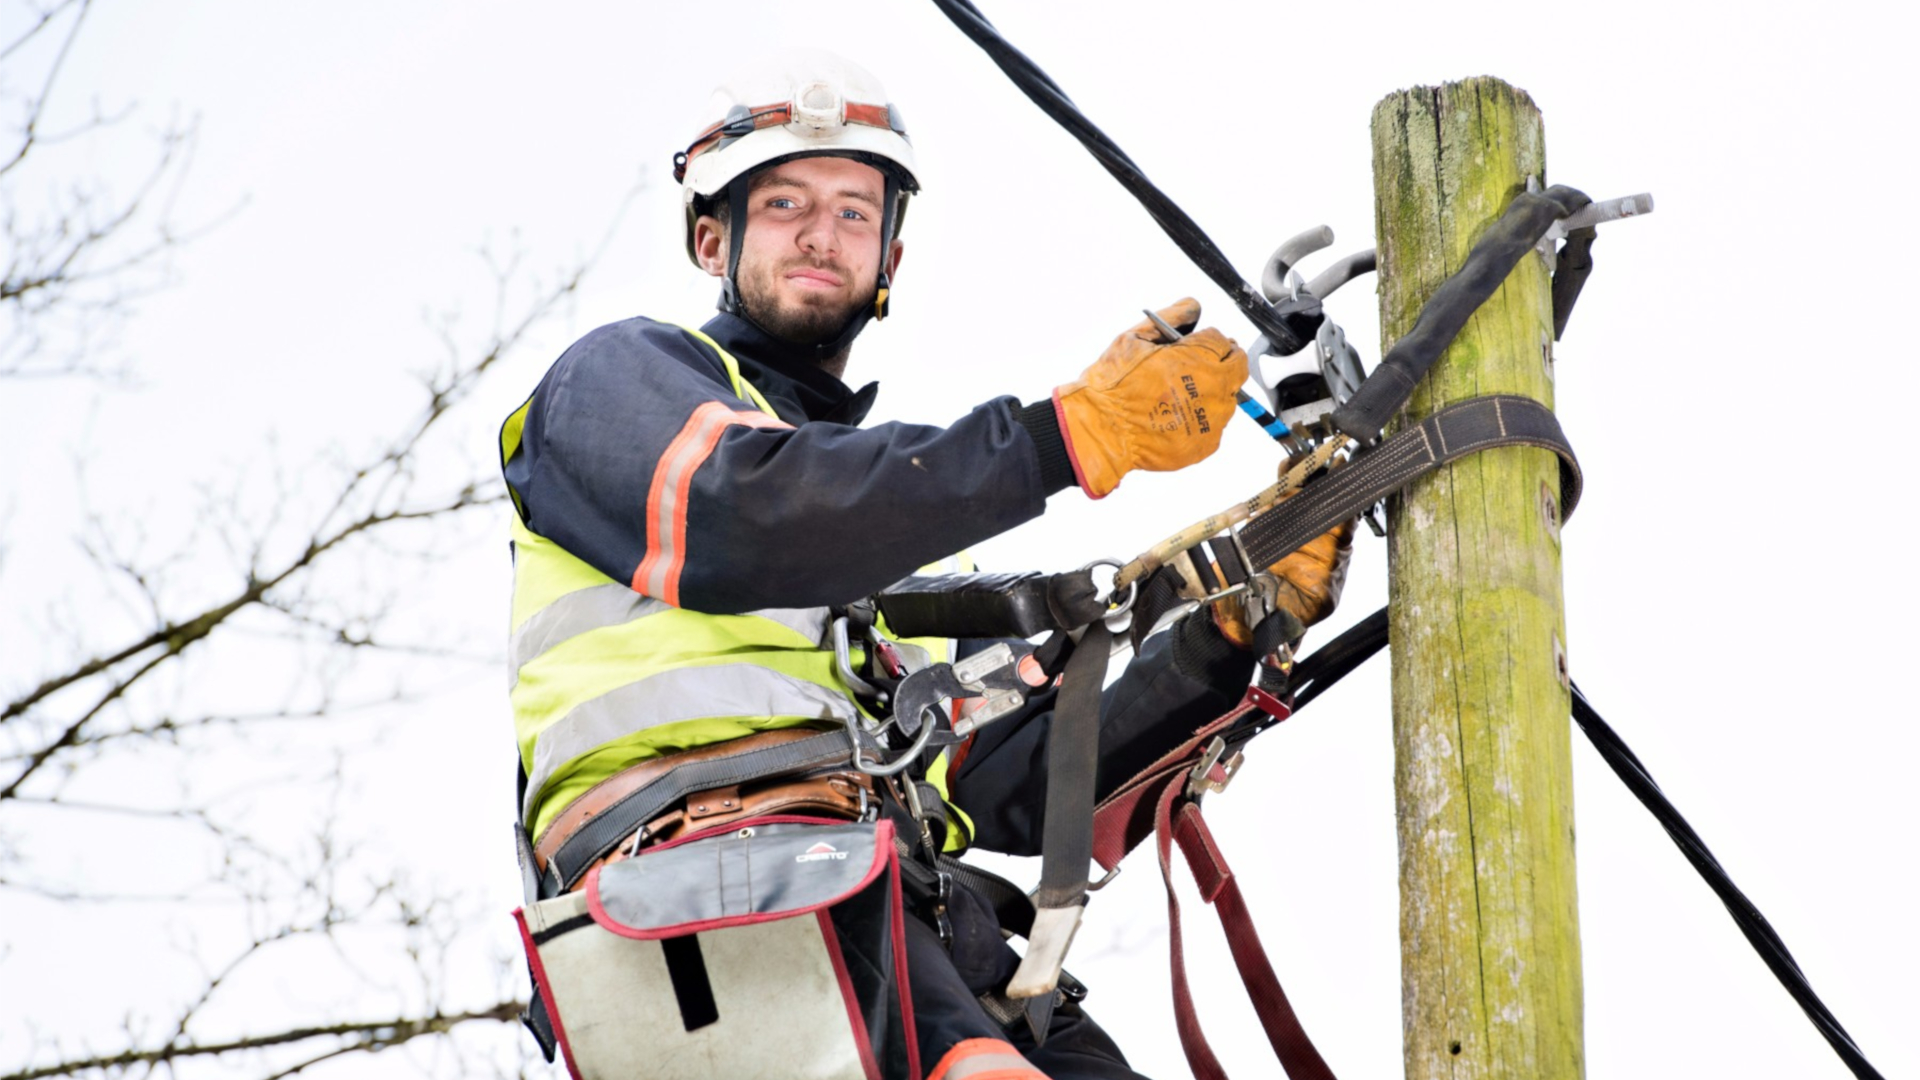 Electricity North West engineer working on cables at the top of an electricity pole